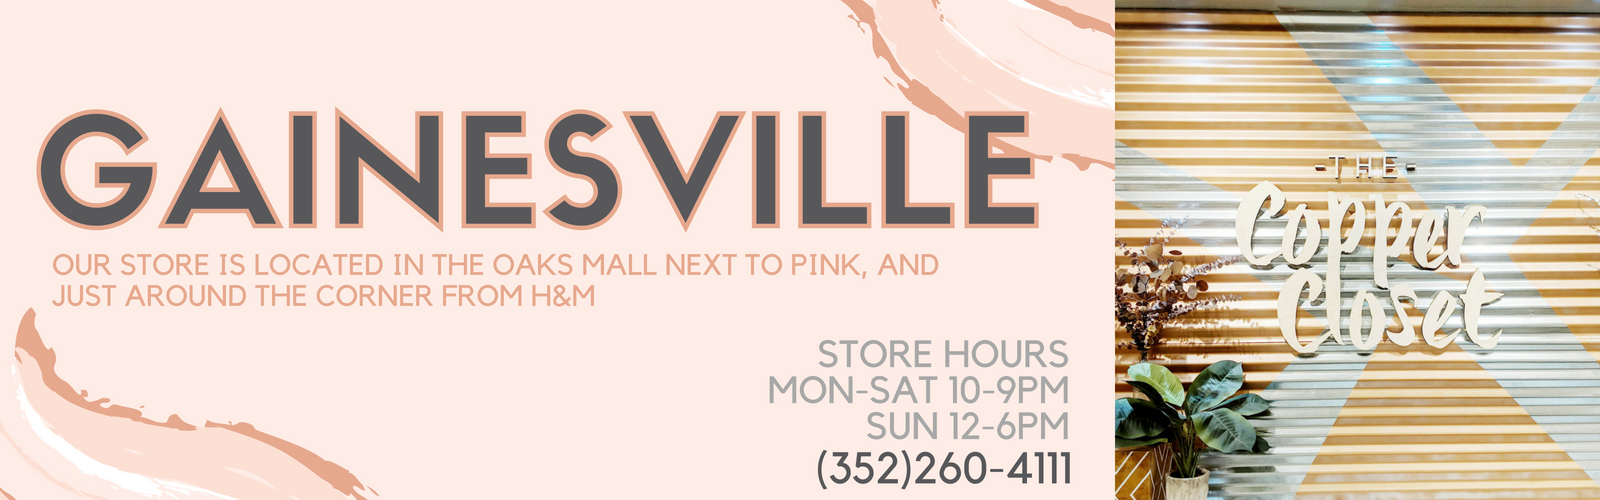 Gainesville.Our store is located in the oaks mall next to pink, and just around the corner from H&M. Store Hours are Monday through Saturday from 10am to 9pm and Sunday noon to 6pm. Our Gainesville location can be reach at 352-260-4111.